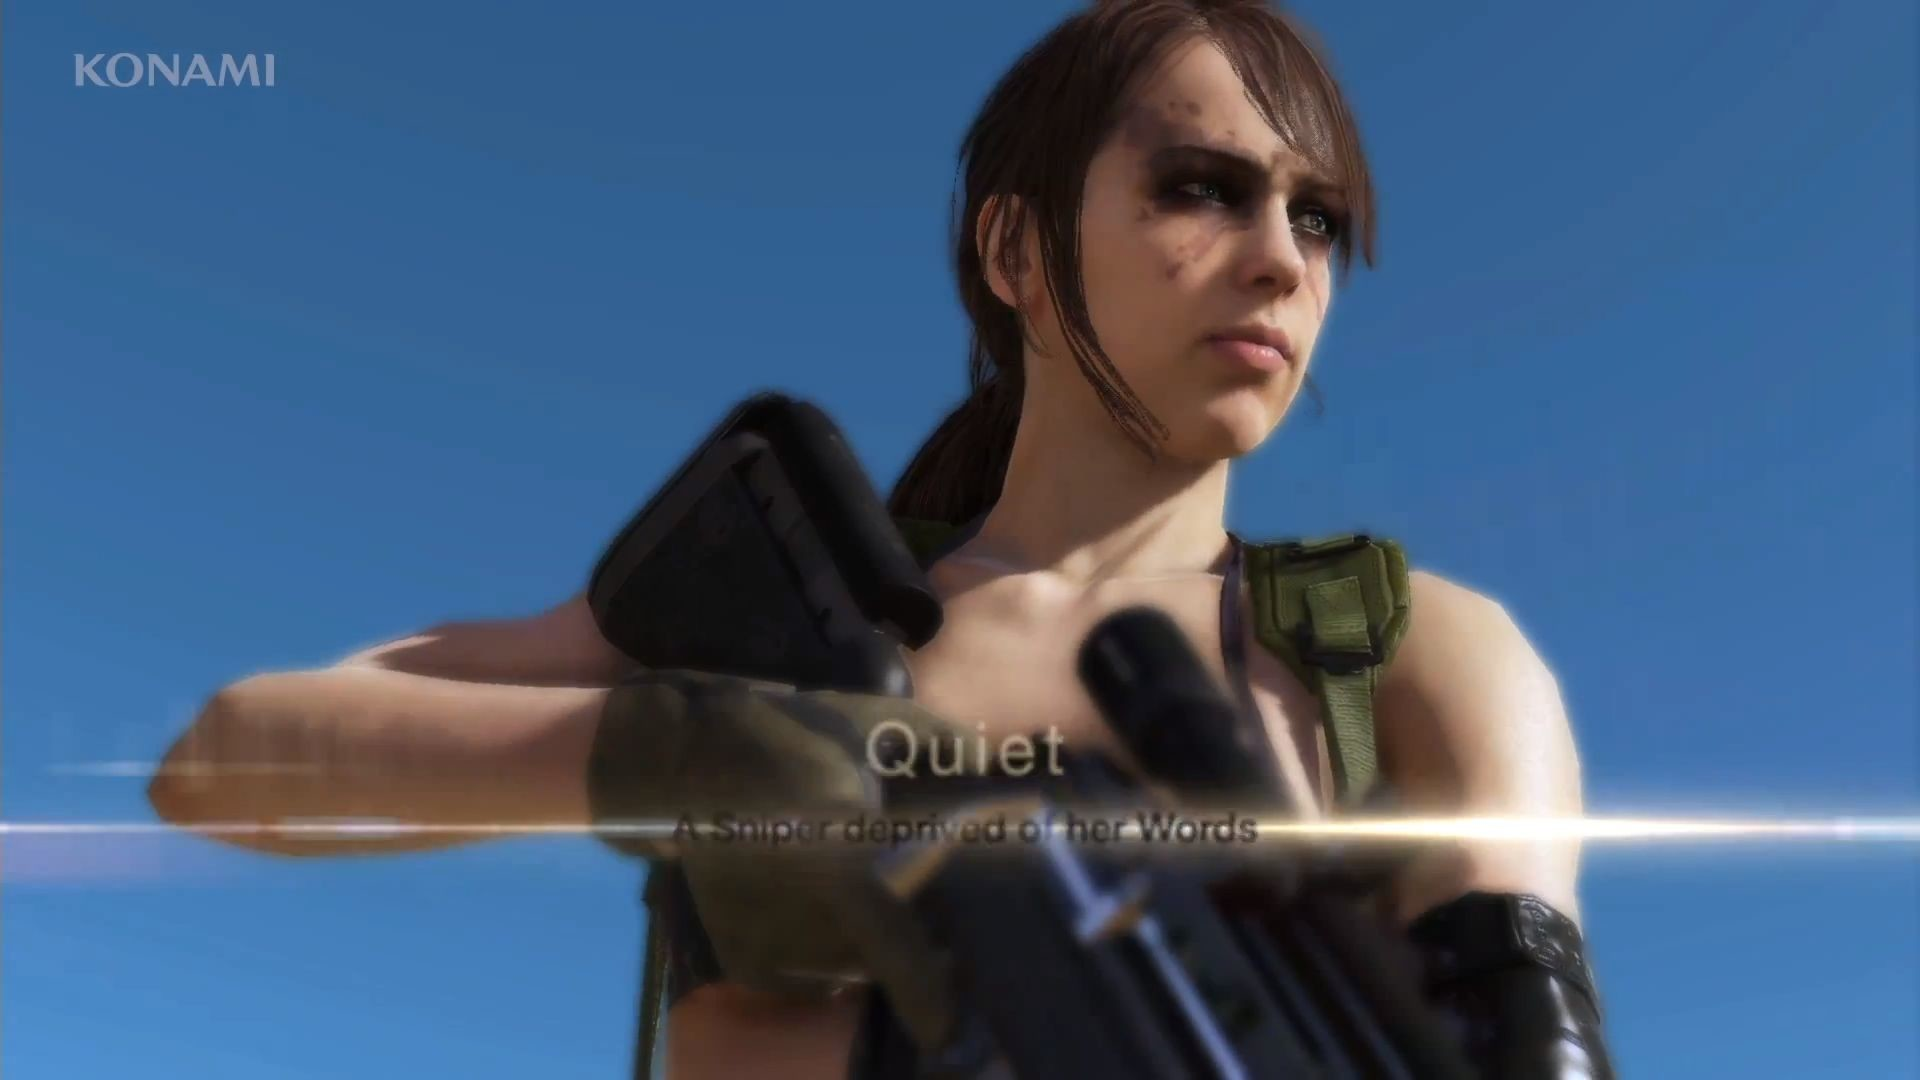 Metal Gear Solid V: The Phantom Pain Guide: How To Unlock Sniper Wolf's  Outfit For Quiet